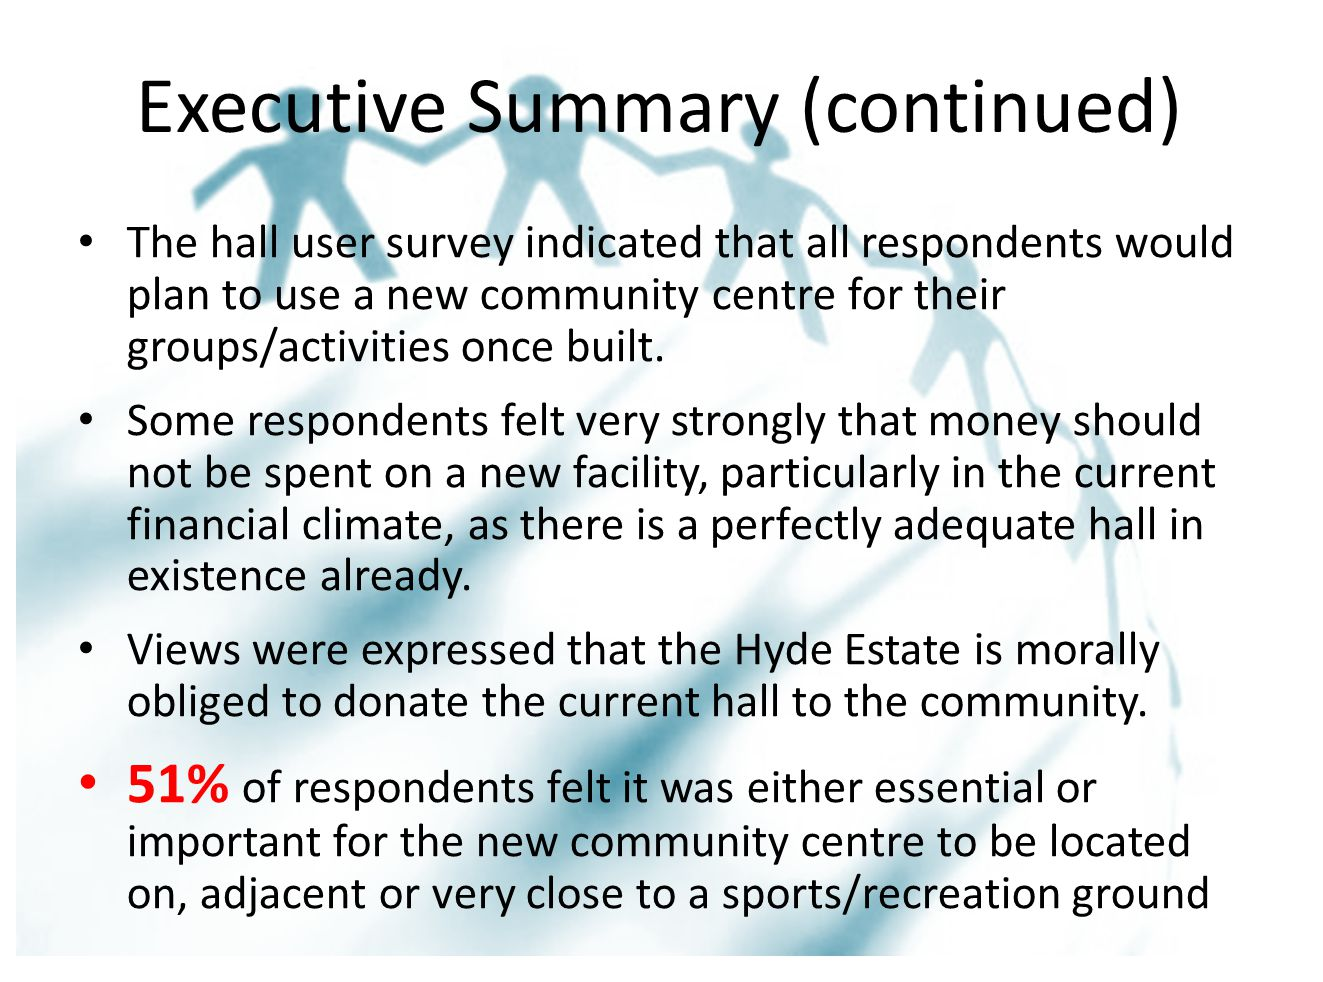 Executive Summary (continued) The hall user survey indicated that all respondents would plan to use a new community centre for their groups/activities once built.